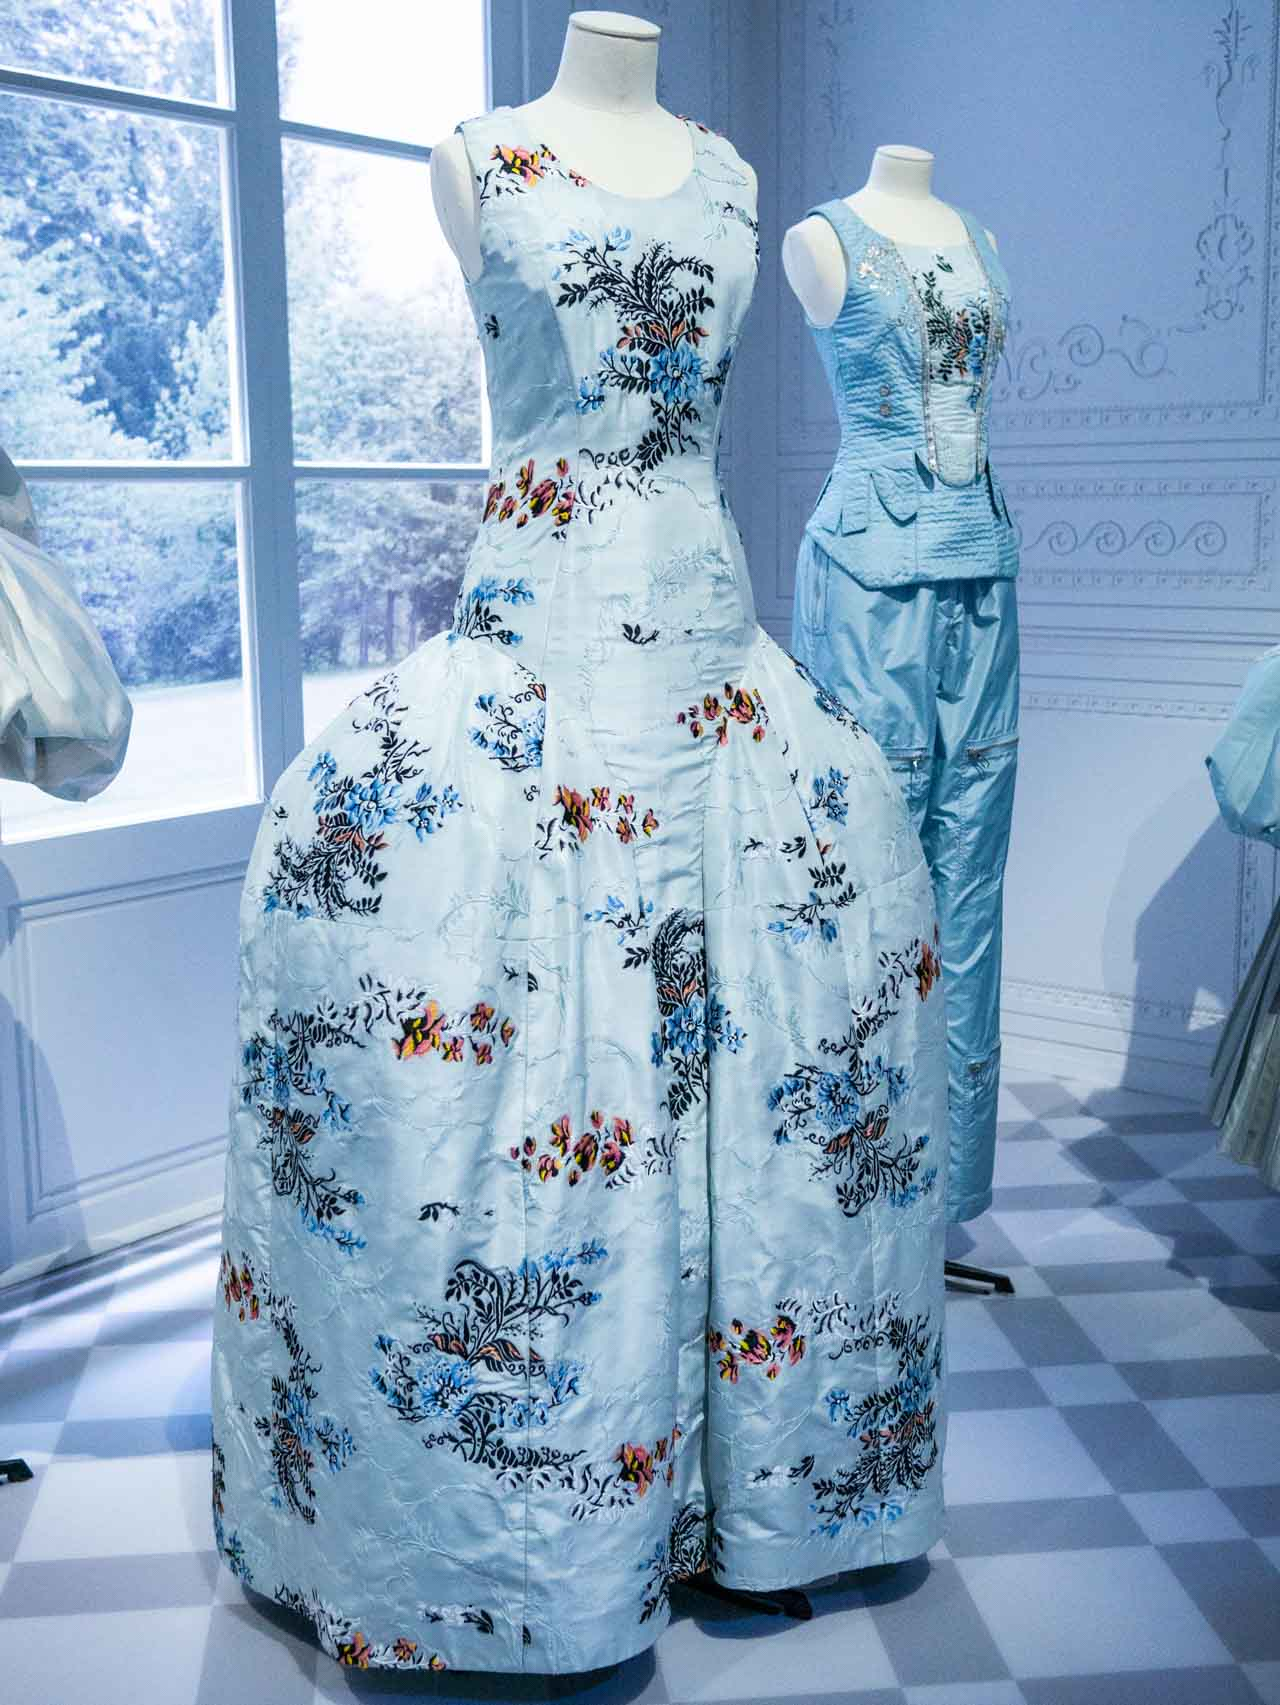 Pale blue dress with floral sprays with 18th-century inspired silhouette. Christian Dior by Raf Simons, Haute Couture, AW14. Taken at the V&A exhibition © The Cutting Class, 2019. Image 2.